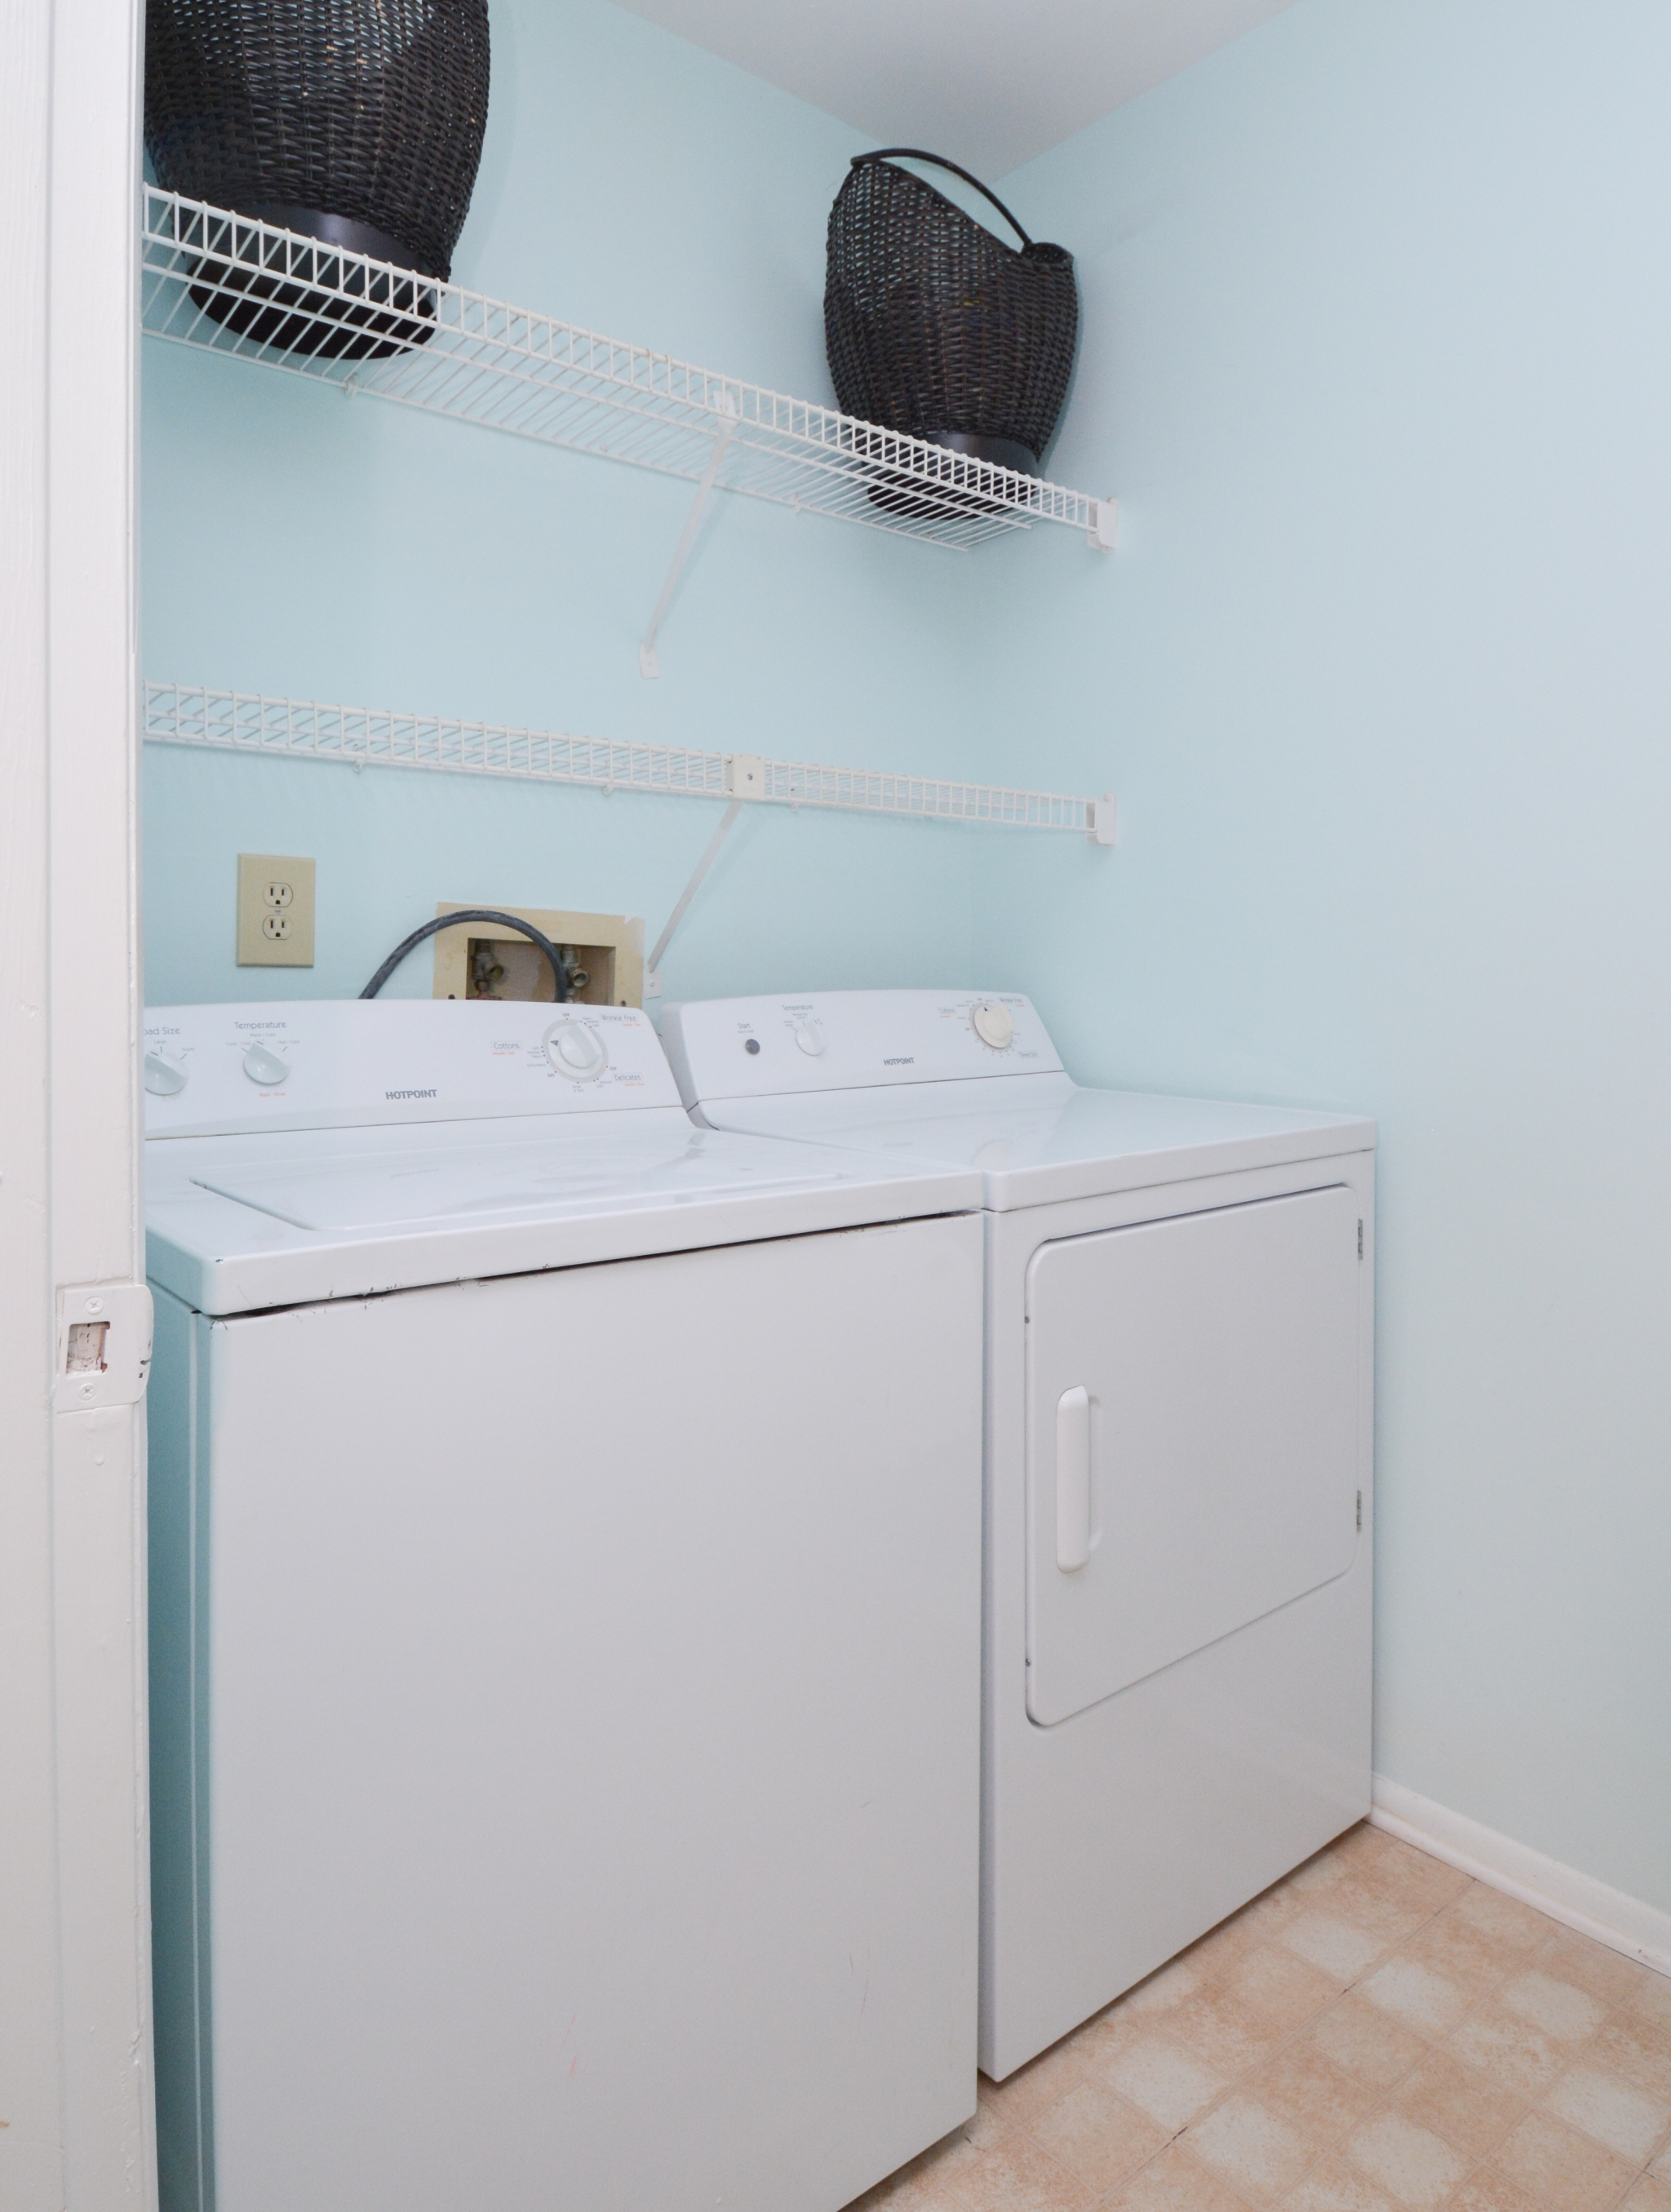 In-home Laundry| Apartments Homes for rent in Laurel, MD | Spring House Apartments